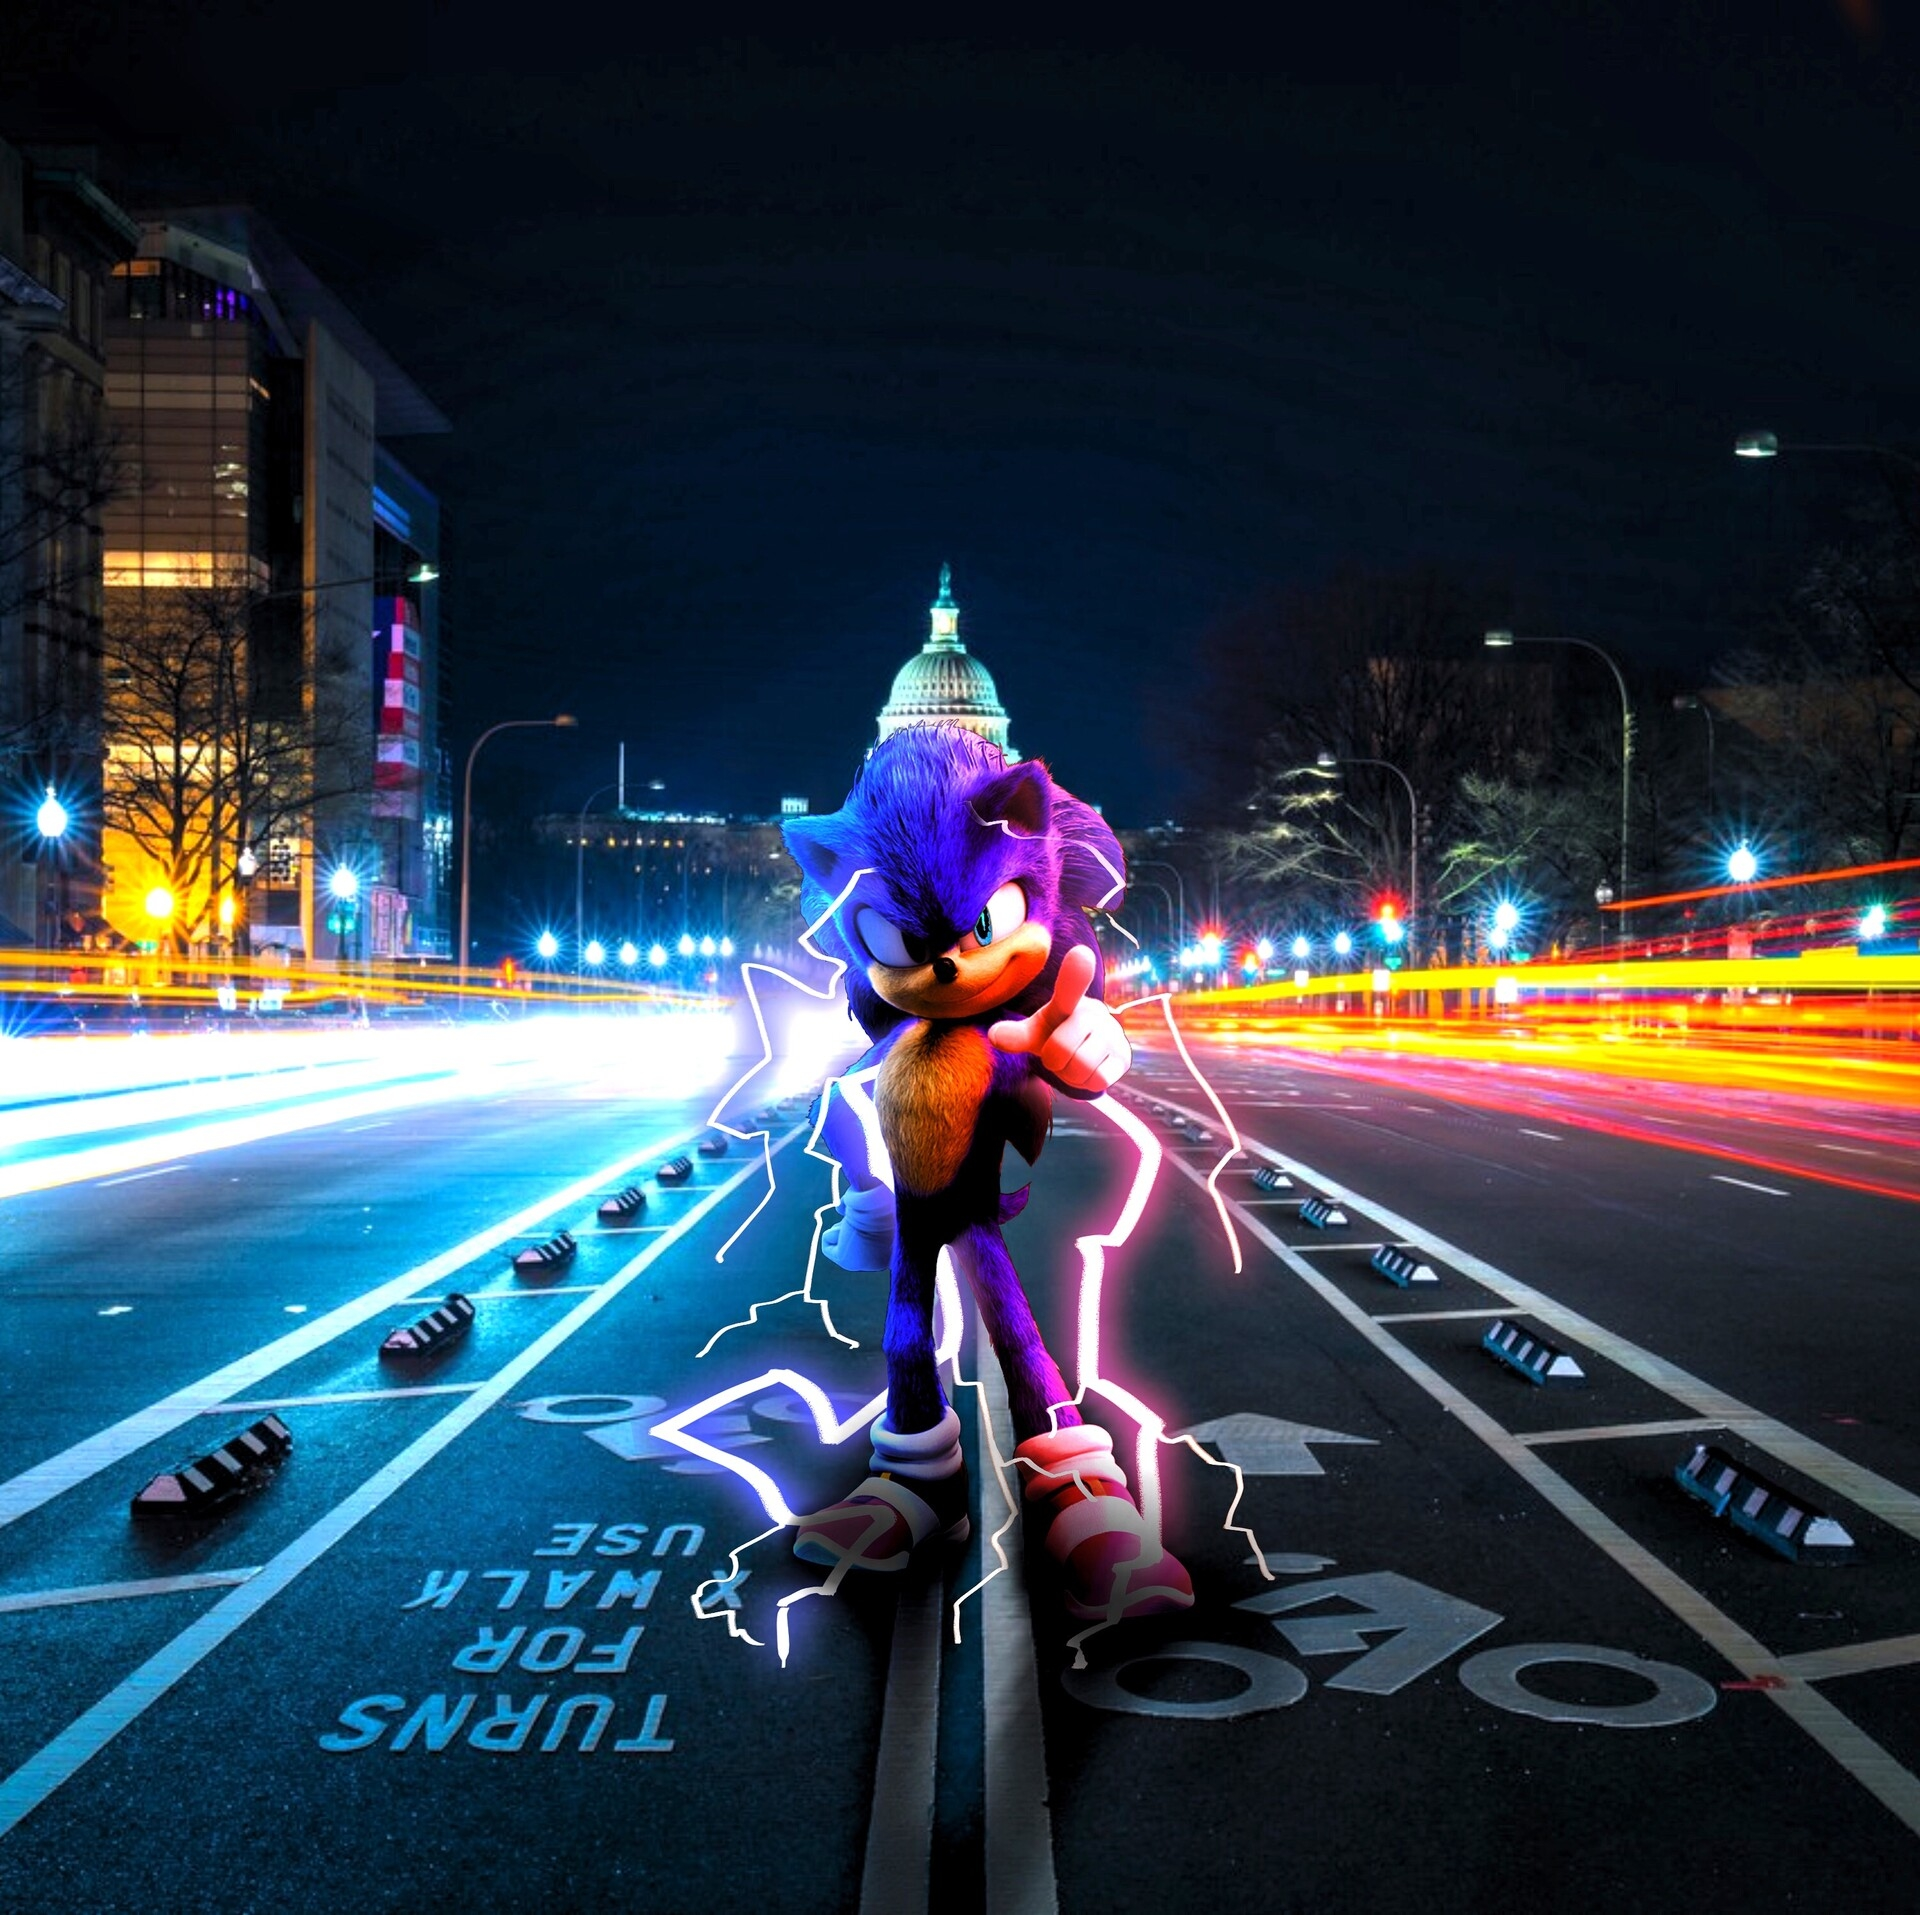 New Sonic The Hedgehog Art Wallpaper Hd Movies 4k Wallpapers Images Photos And Background